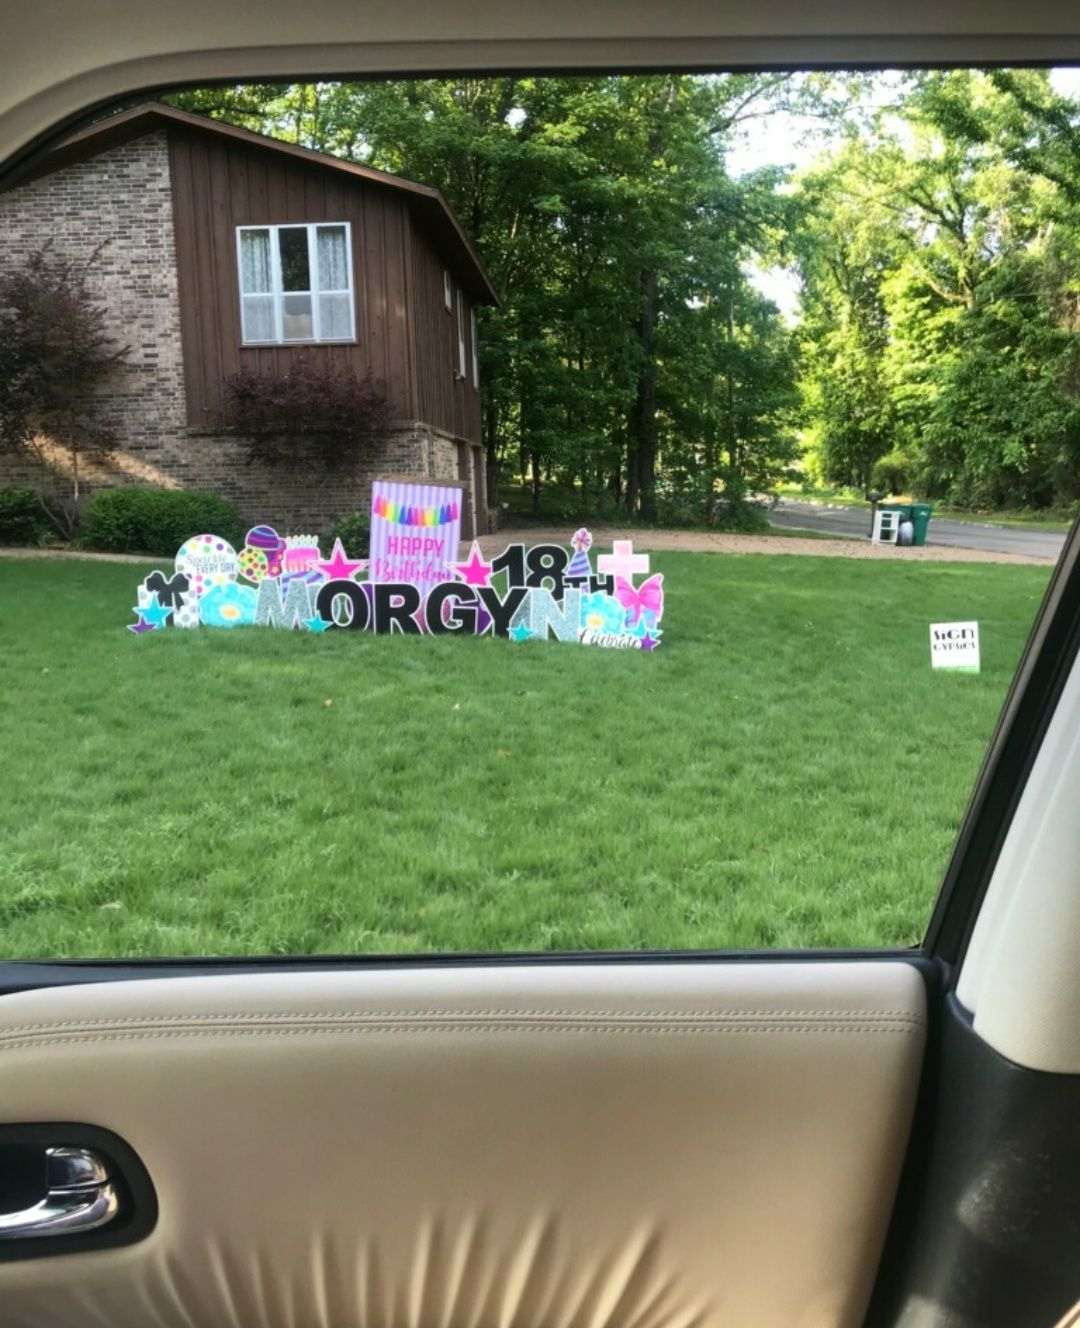 This was in front of a house in Arkansas. I am worried.